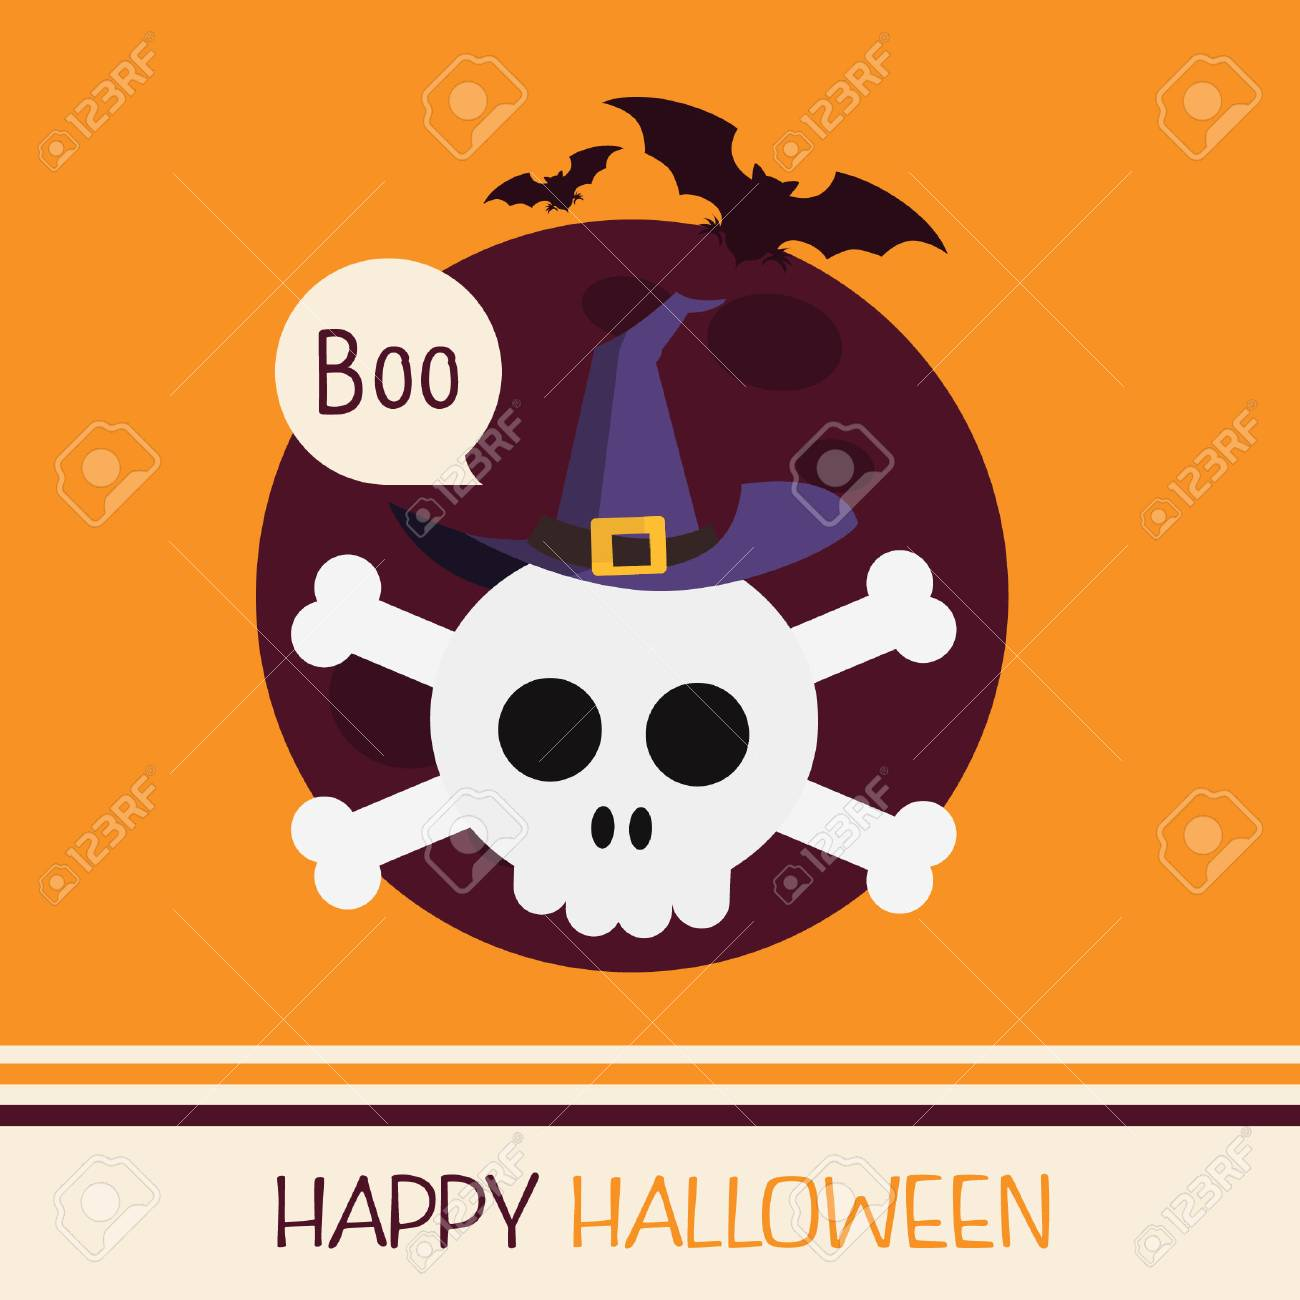 halloween party design template with skull wearing witch hat